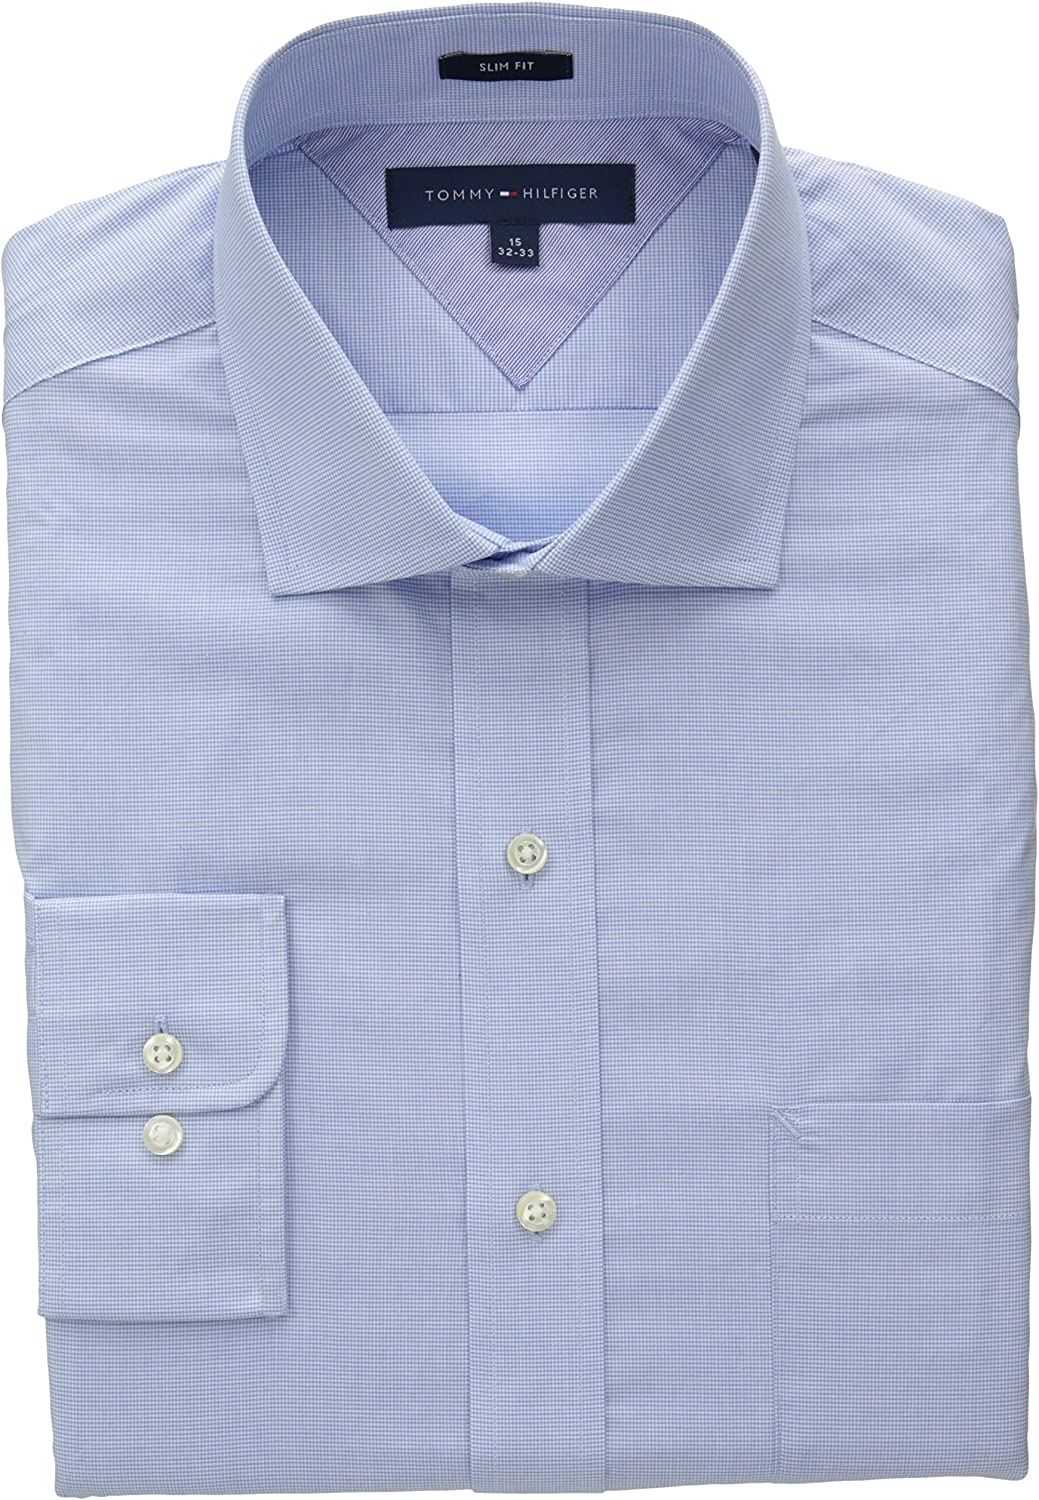 Tommy Hilfiger Mens Slim Fit Micro Check